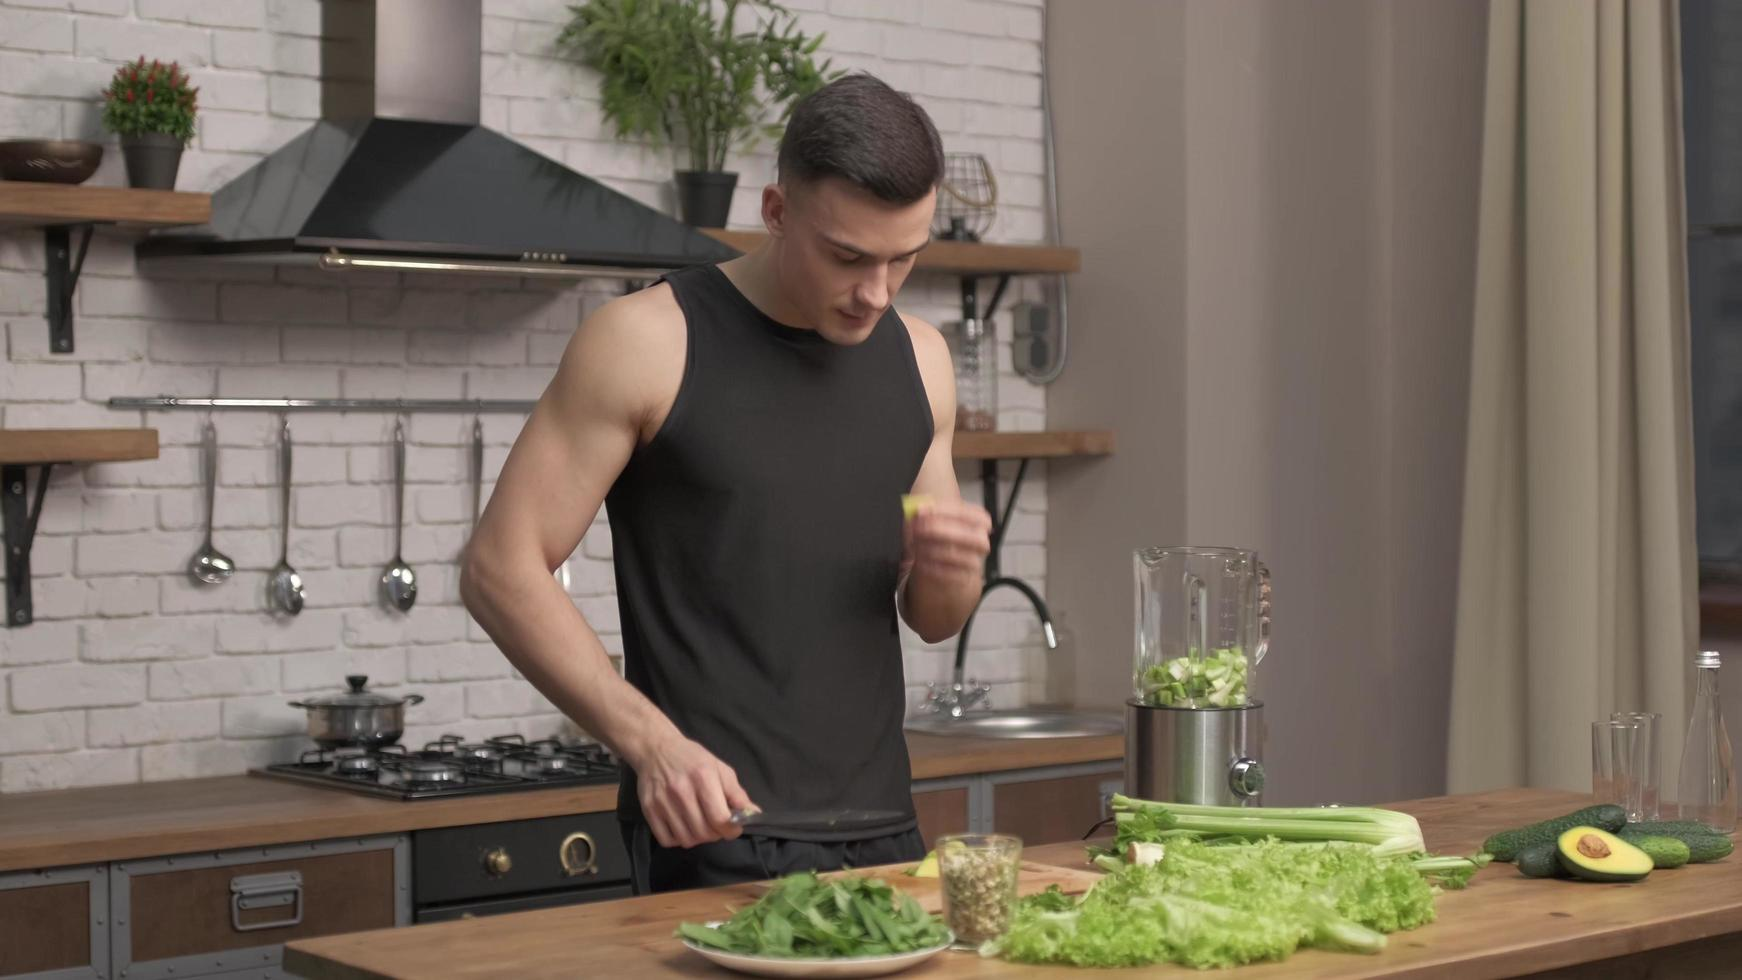 athlete man preparing ingredients for smoothie in a modern kitchen. Preparation of vegetables for detox in blender. avocado, celery, cucumber in liquidizer silver pot in background. Full HD photo